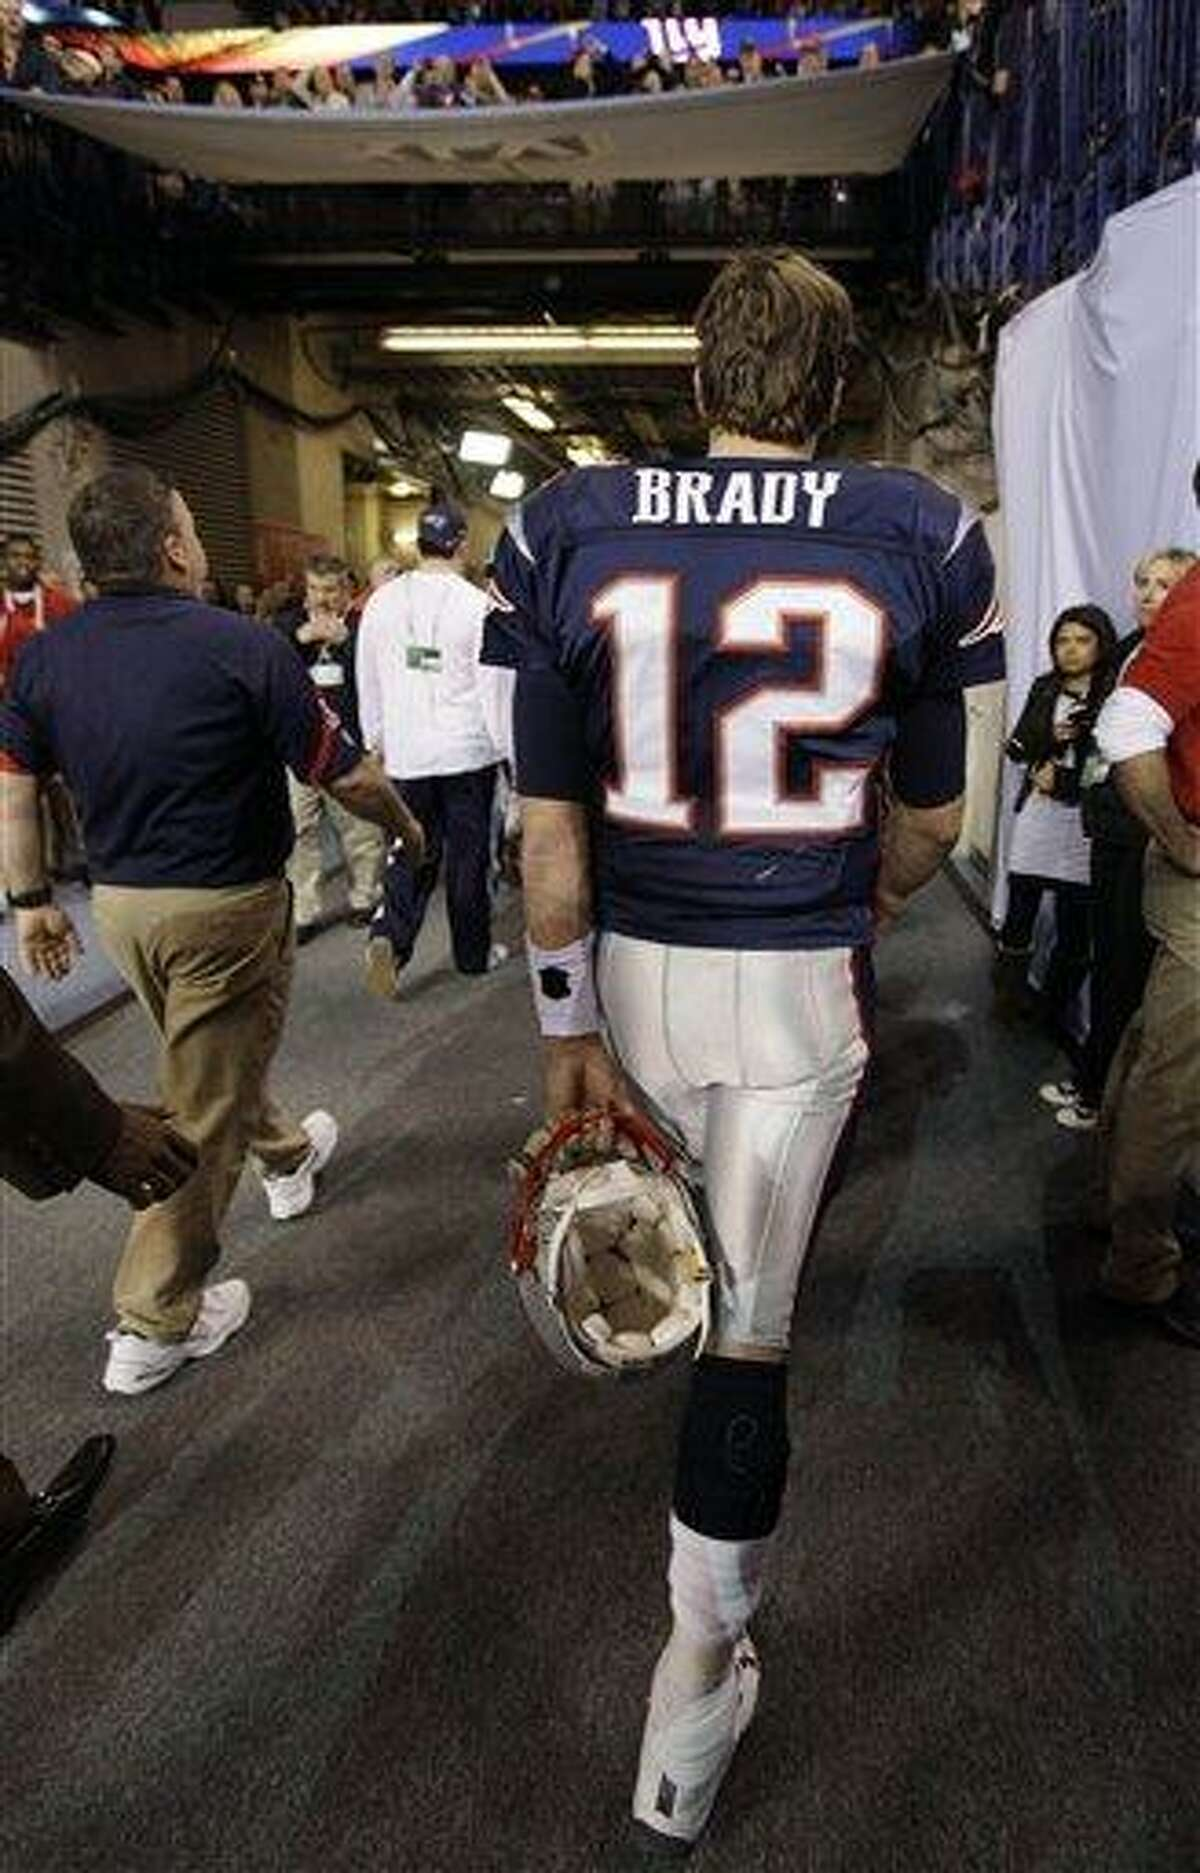 New England Patriots quarterback Tom Brady walks off the field after the Patriots lost to the New York Giants 21-17 in the NFL Super Bowl XLVI football game, Sunday, Feb. 5, 2012, in Indianapolis. (AP Photo/Paul Sancya)